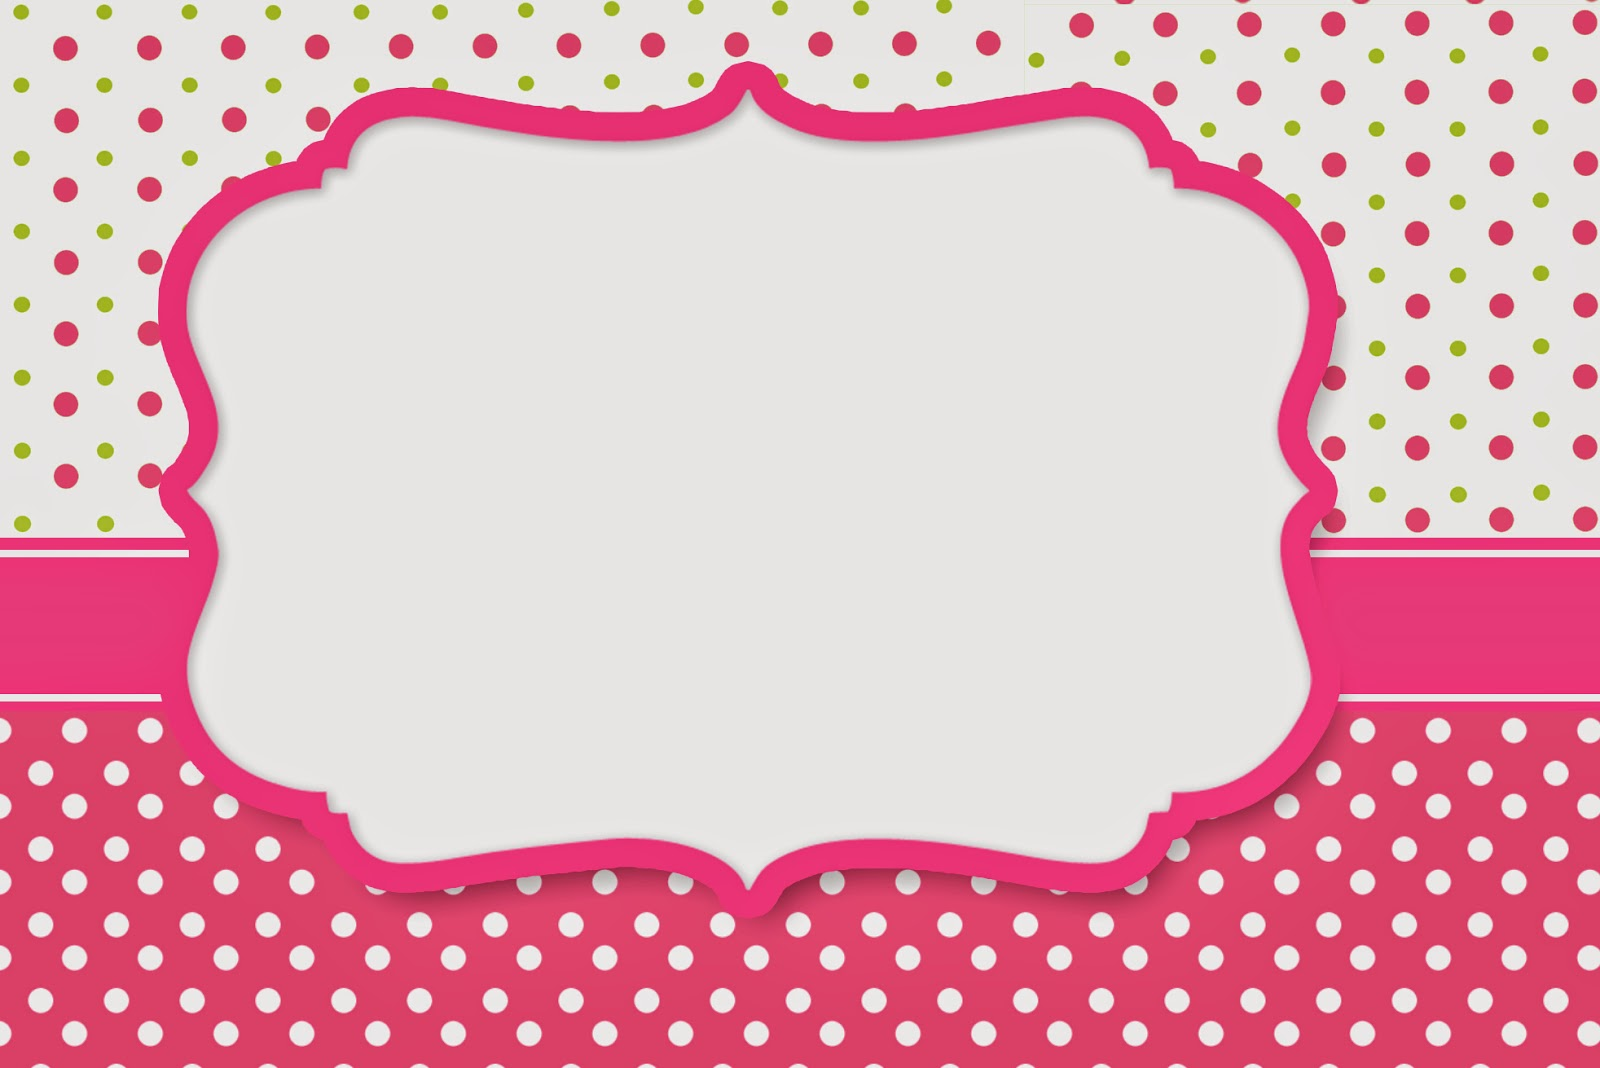 Pink, Green and White Polka Dots Free Printable Invitations, Labels or Cards.